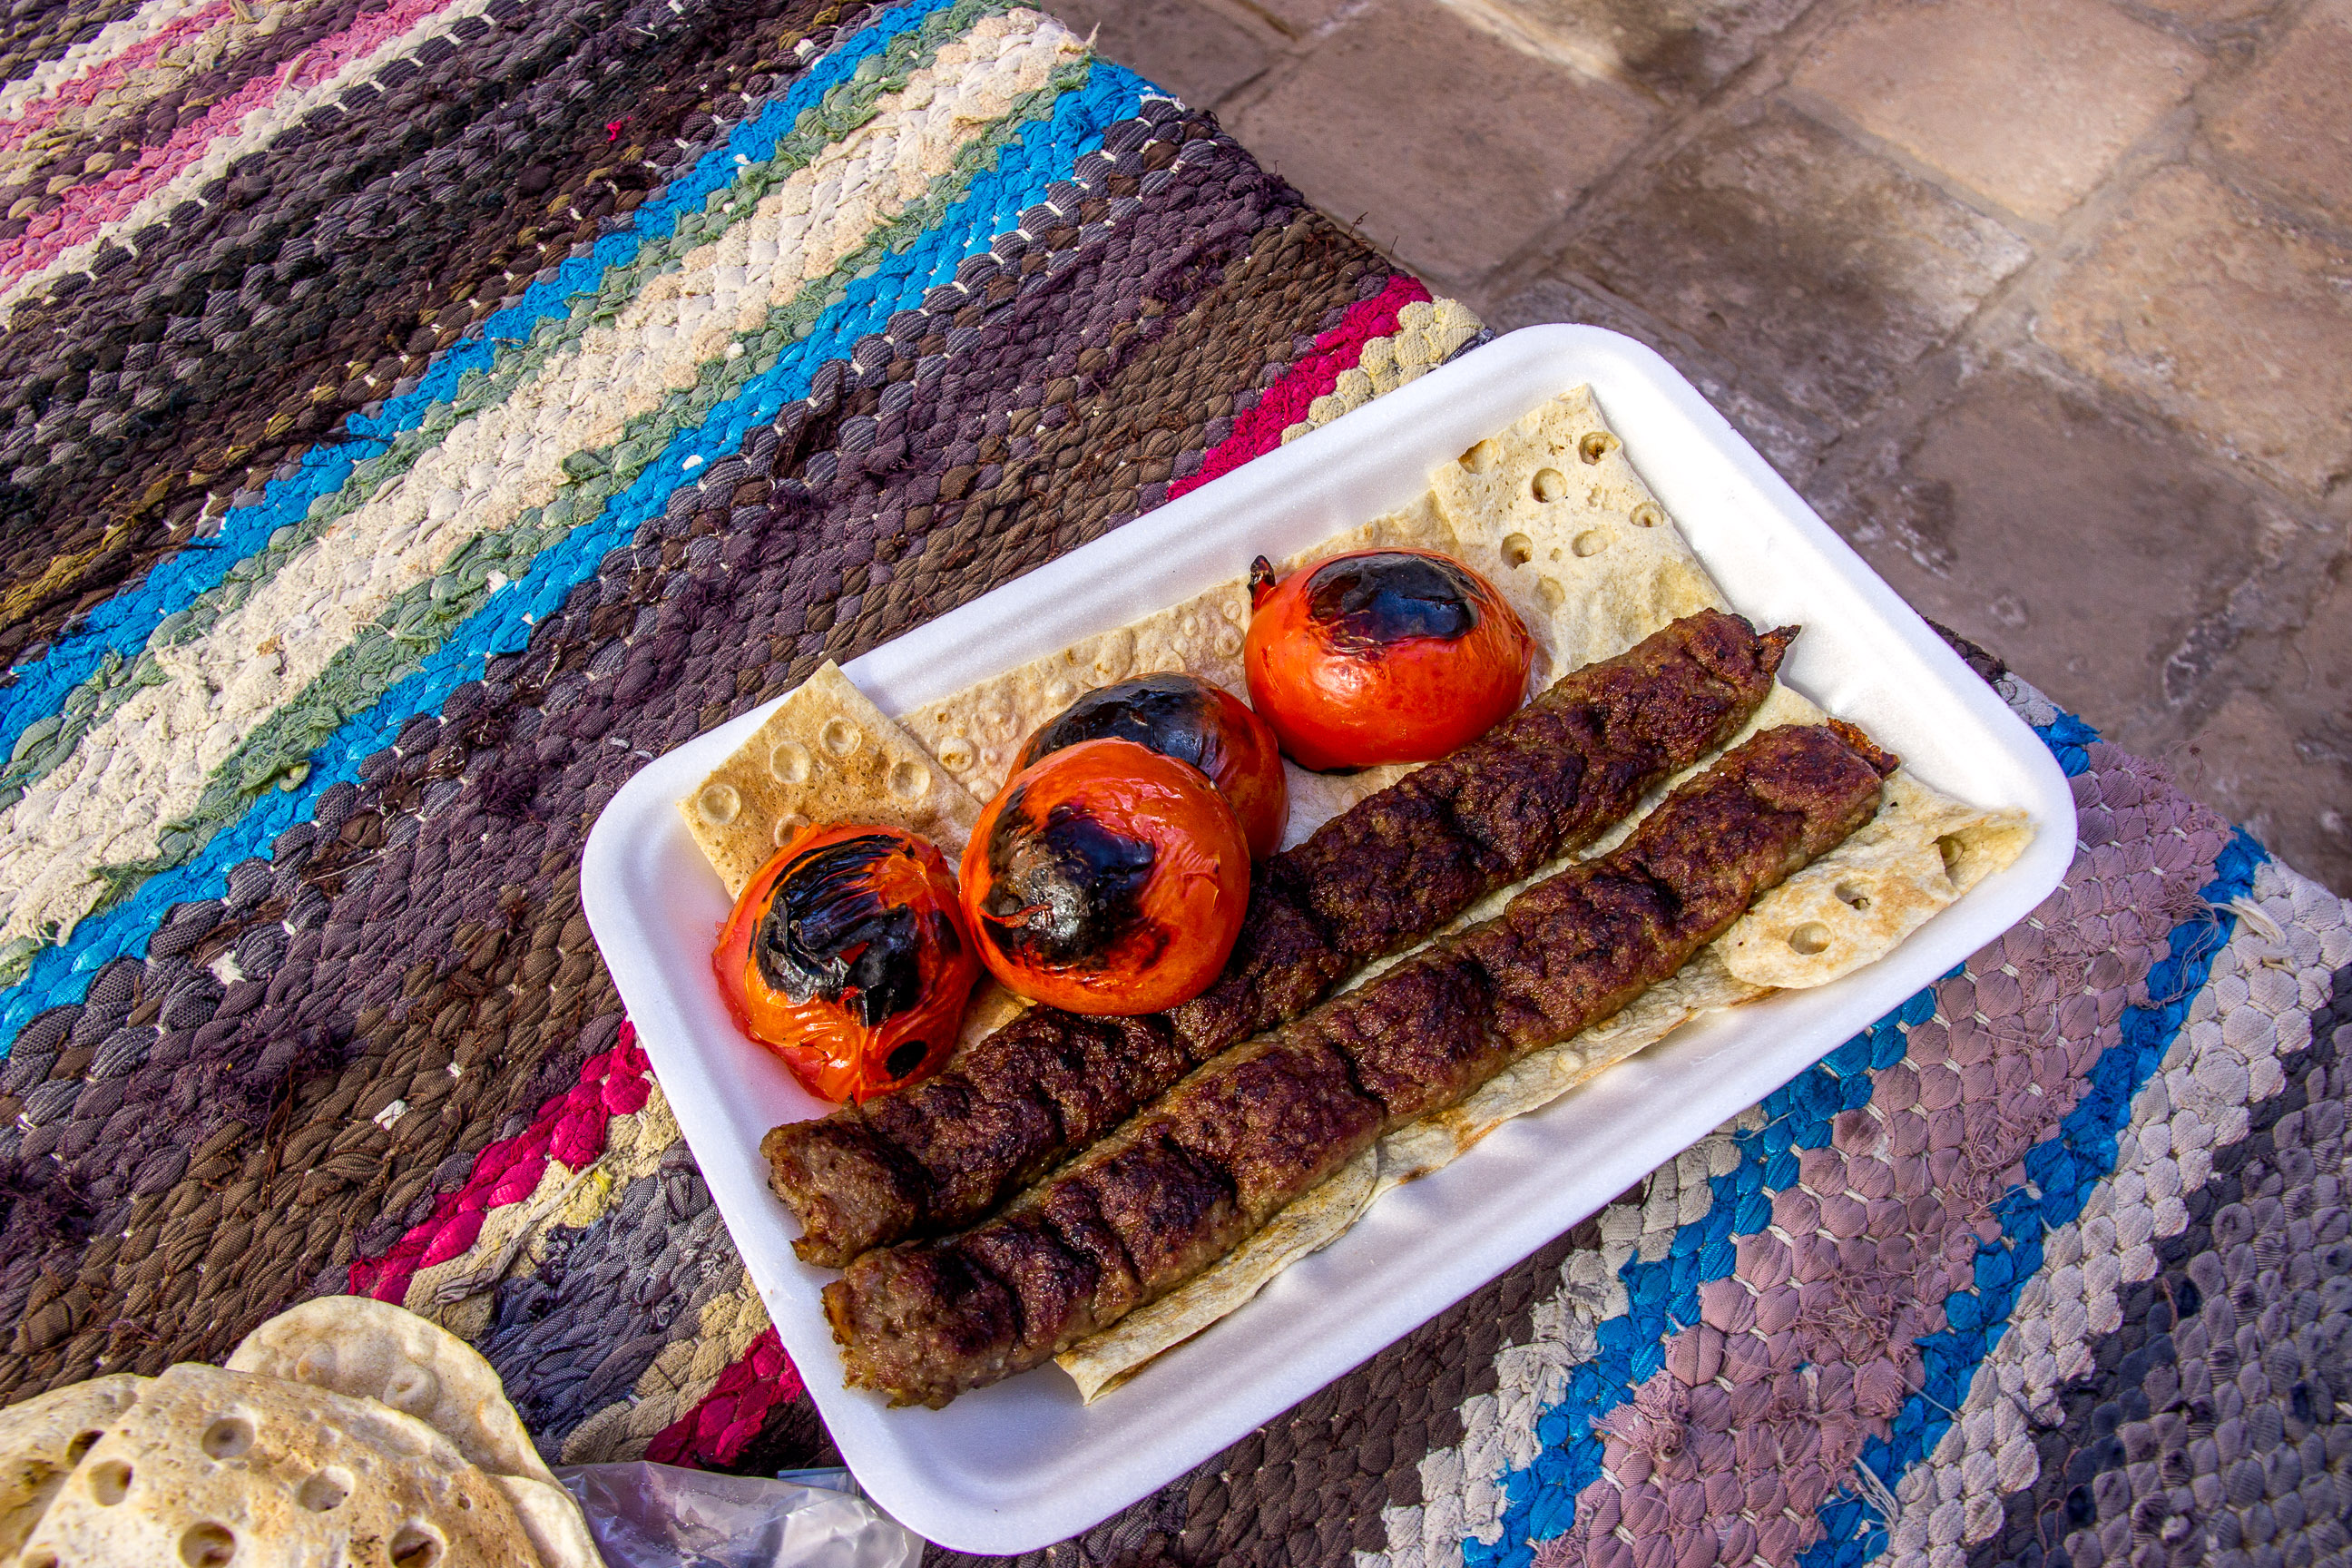 iran travel budget - food kebab